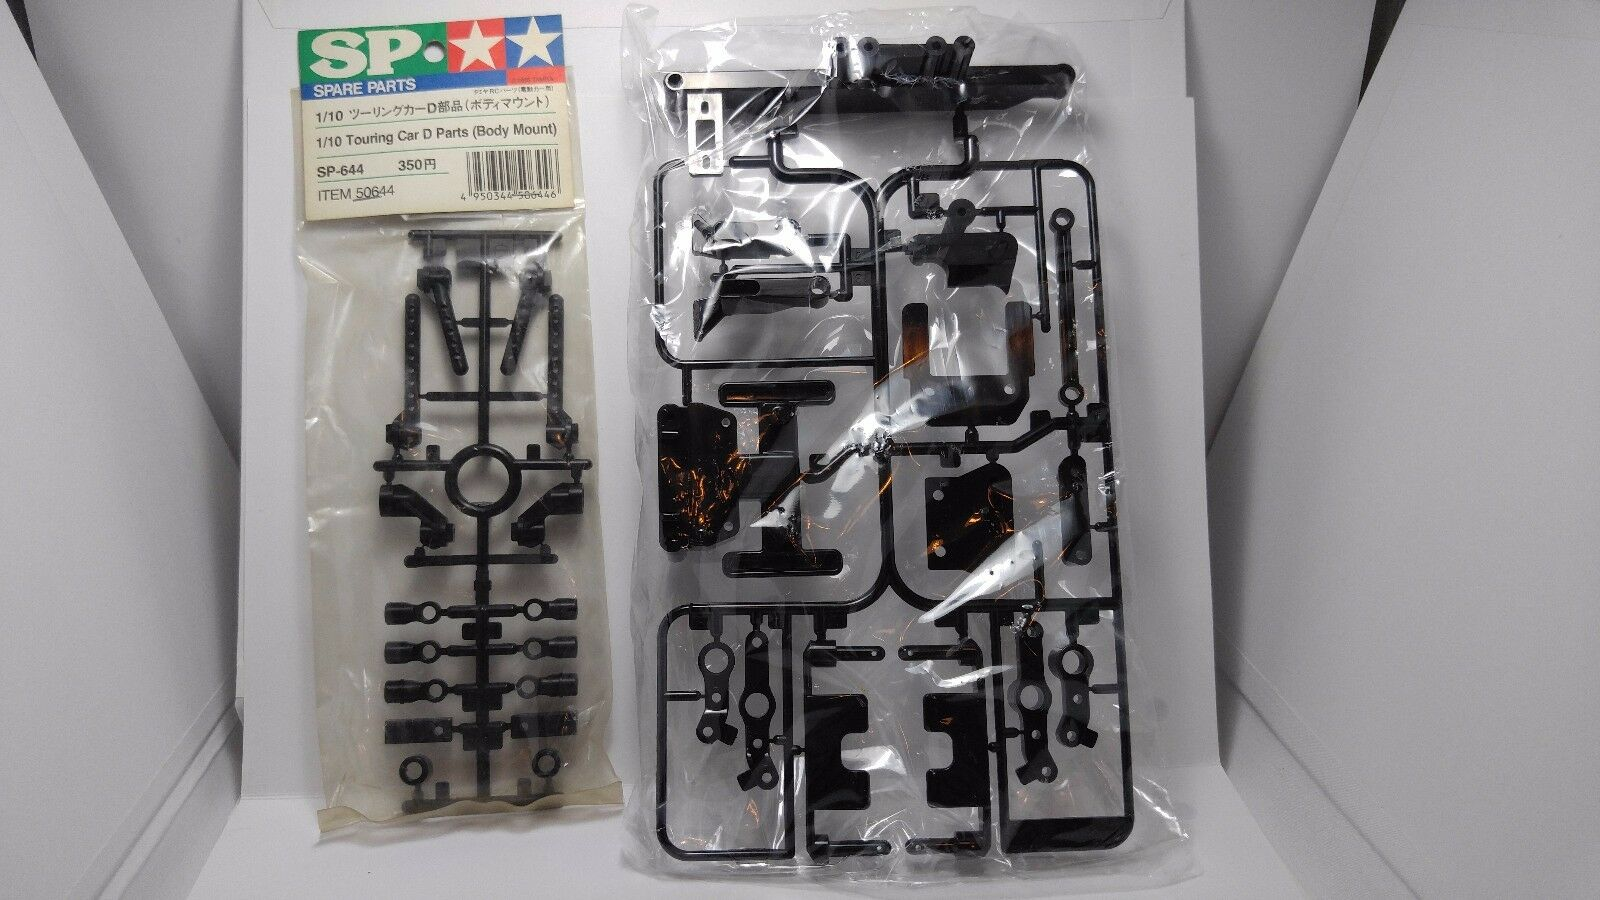 Tamiya 53166 TA02 FF01 F.R.P. Chassis Spare J Parts 50644 D PARTS Body Mount